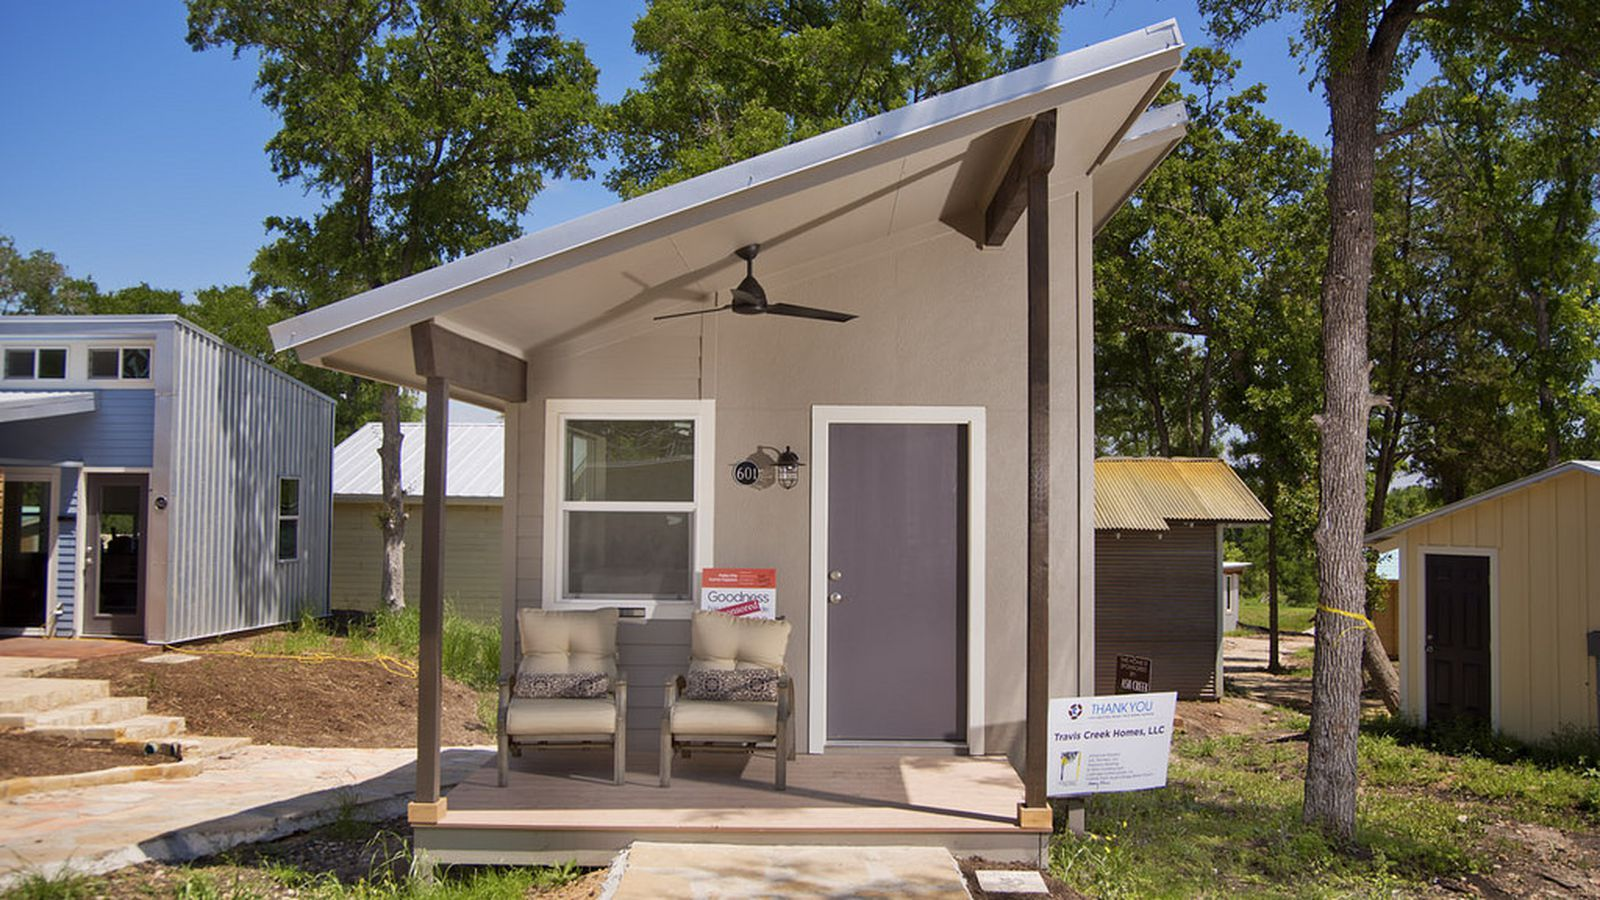 10 Tiny House Villages For Homeless Residents Across The U S Tiny House Village Homeless Housing Dream House Exterior